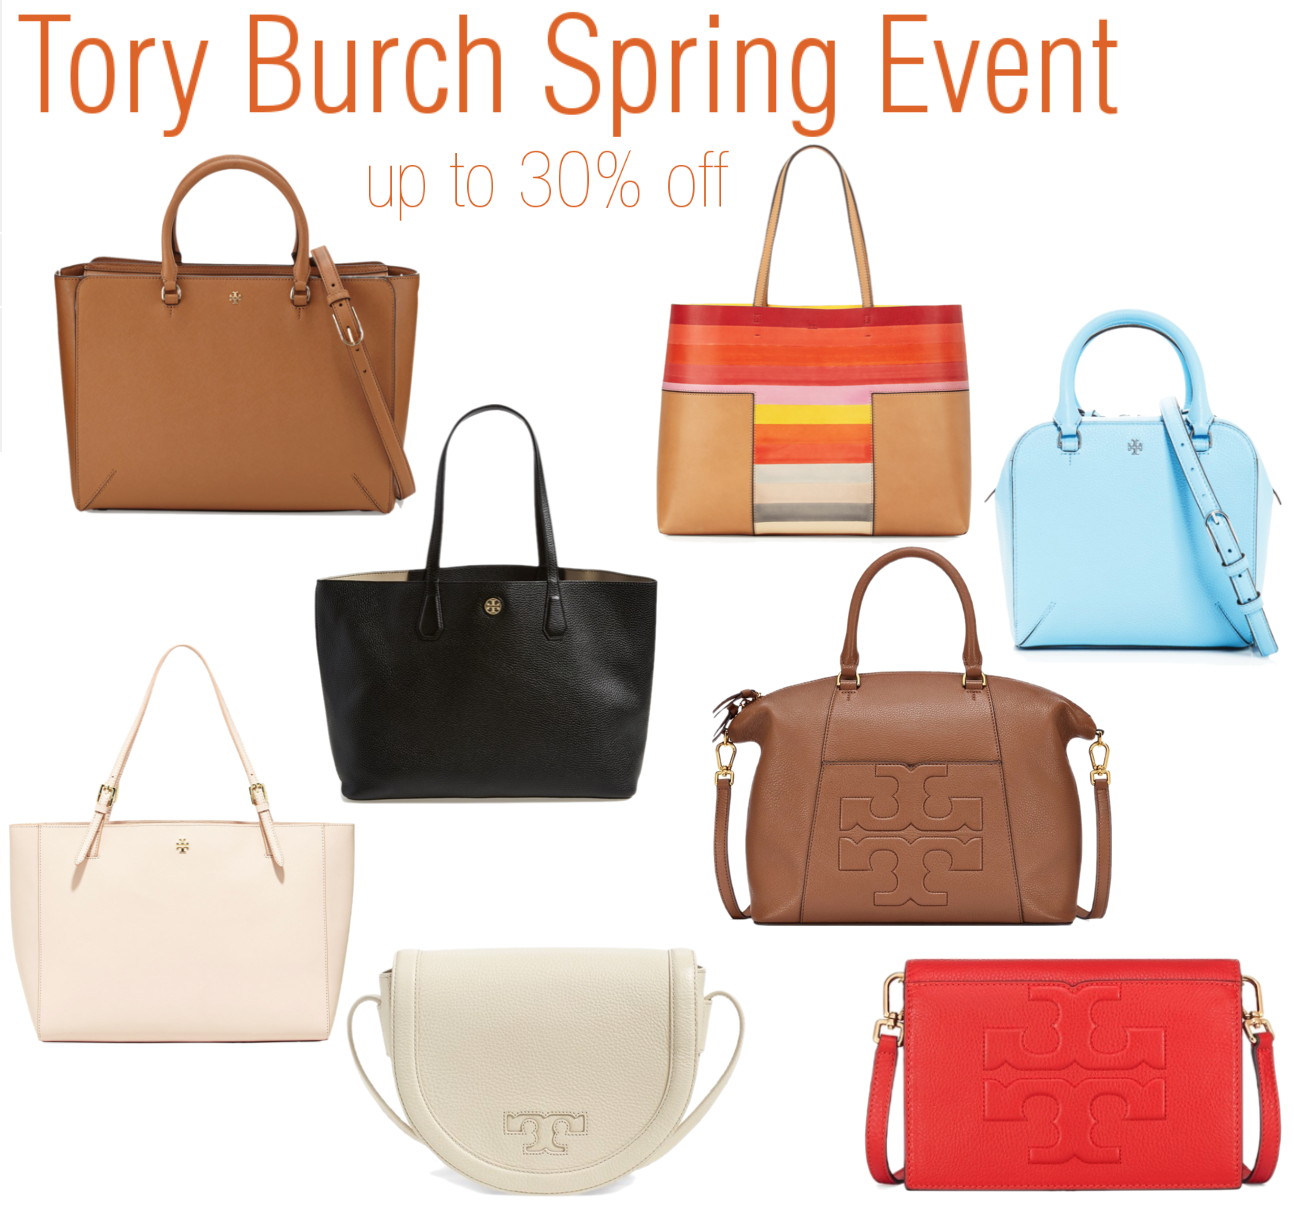 tory burch bag sale spring event 45216aa6f828